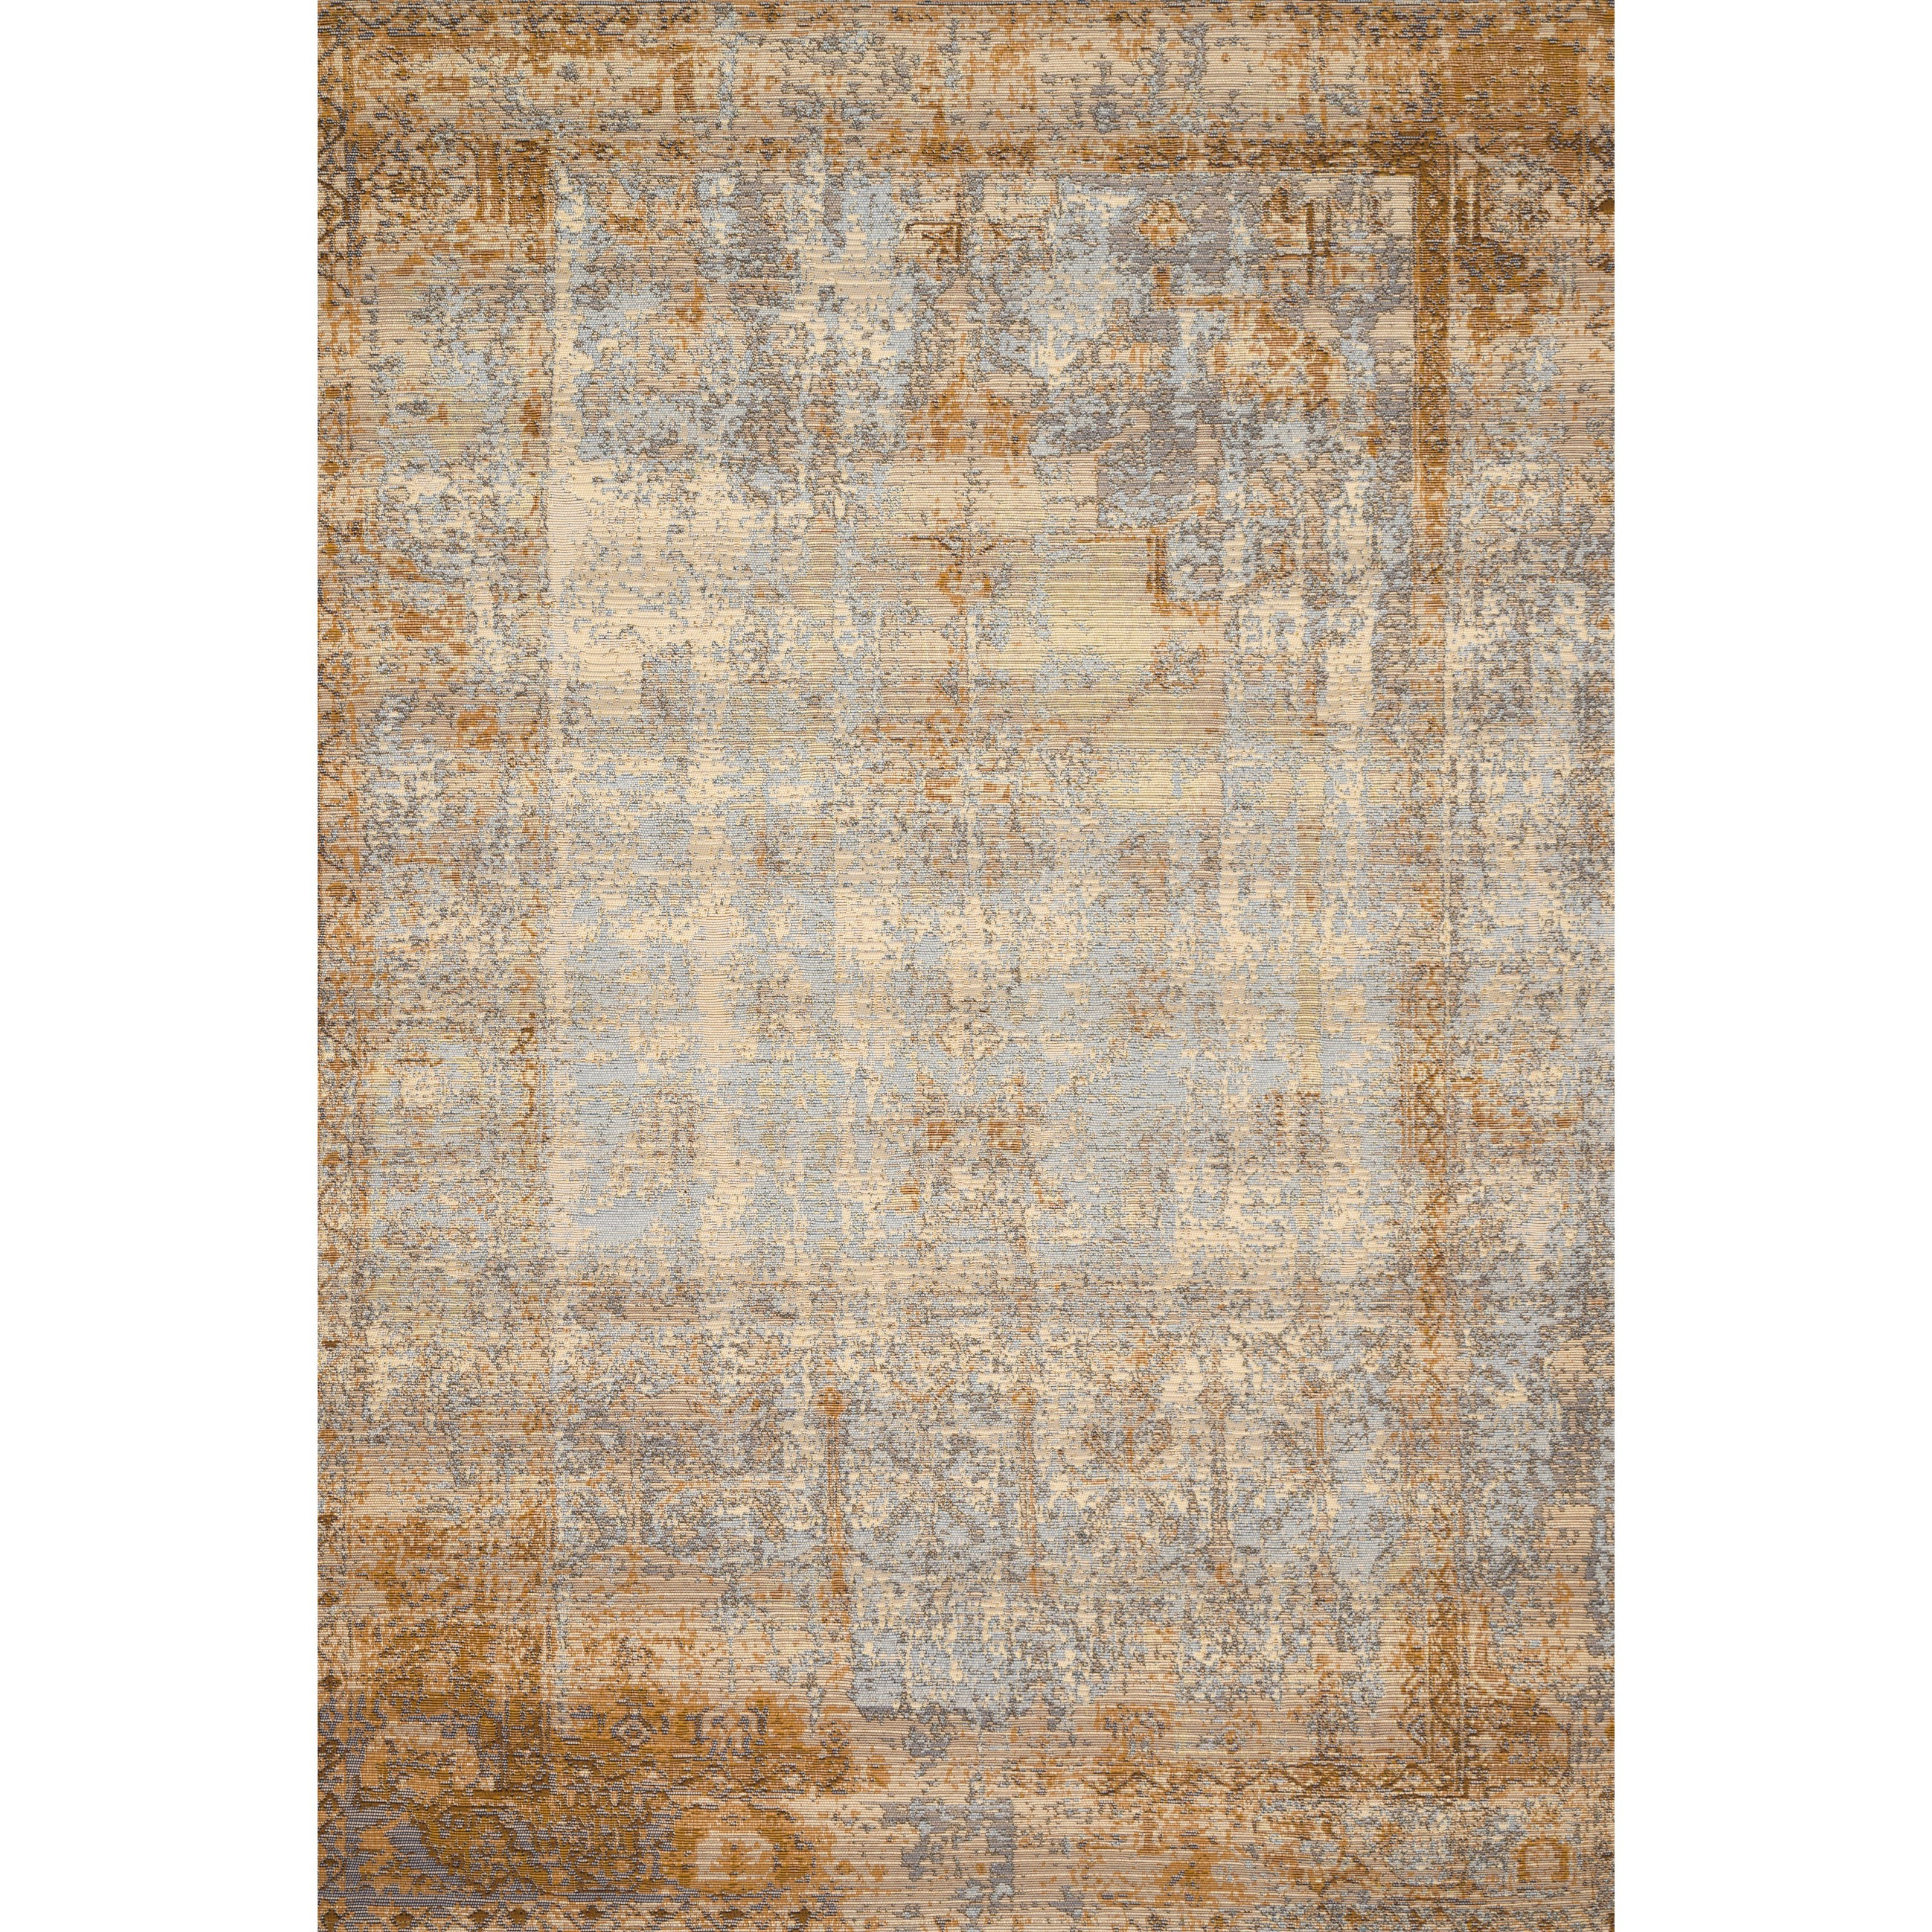 """Mika 2'5"""" x 11'2"""" Ant. Ivory / Copper Rug by Loloi Rugs at Virginia Furniture Market"""